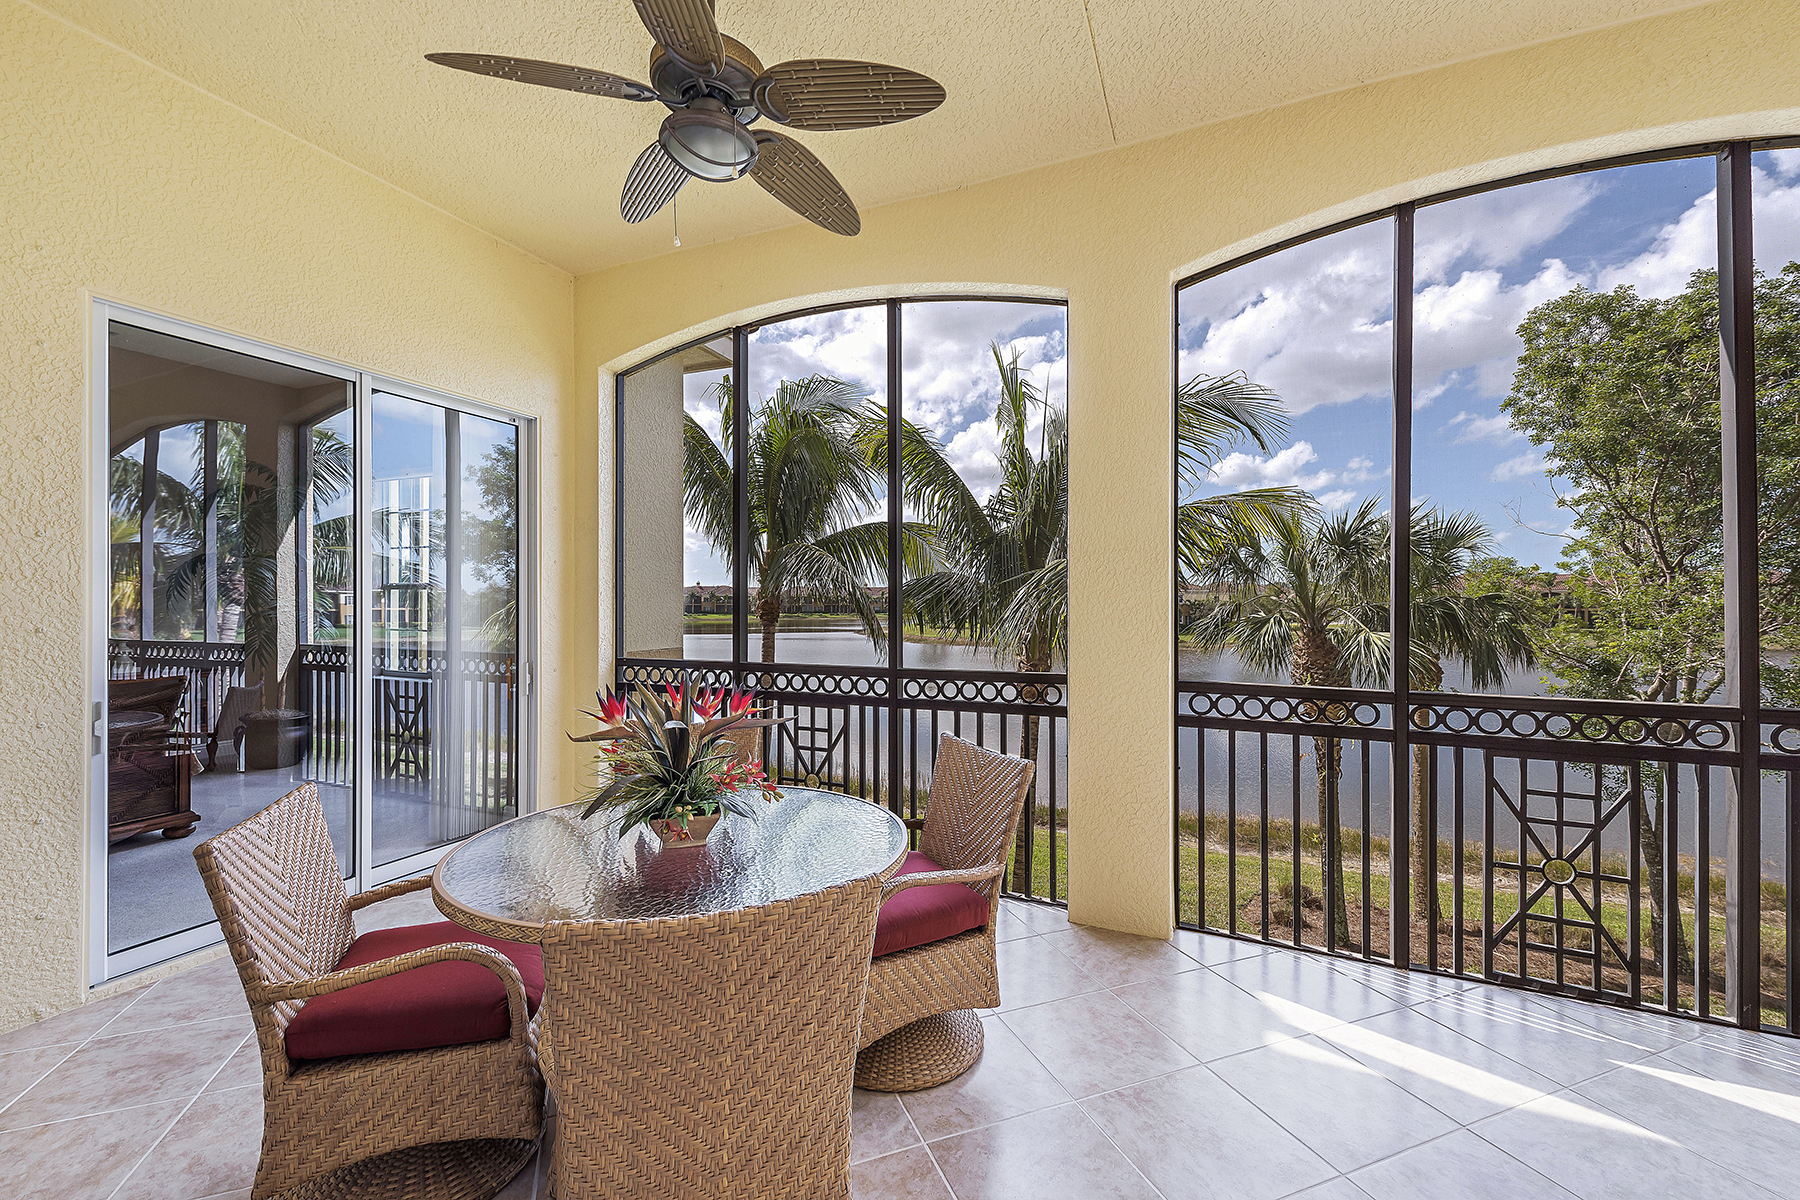 Condominium for Sale at FIDDLERS CREEK 9271 Museo Cir 202, Naples, Florida, 34114 United States